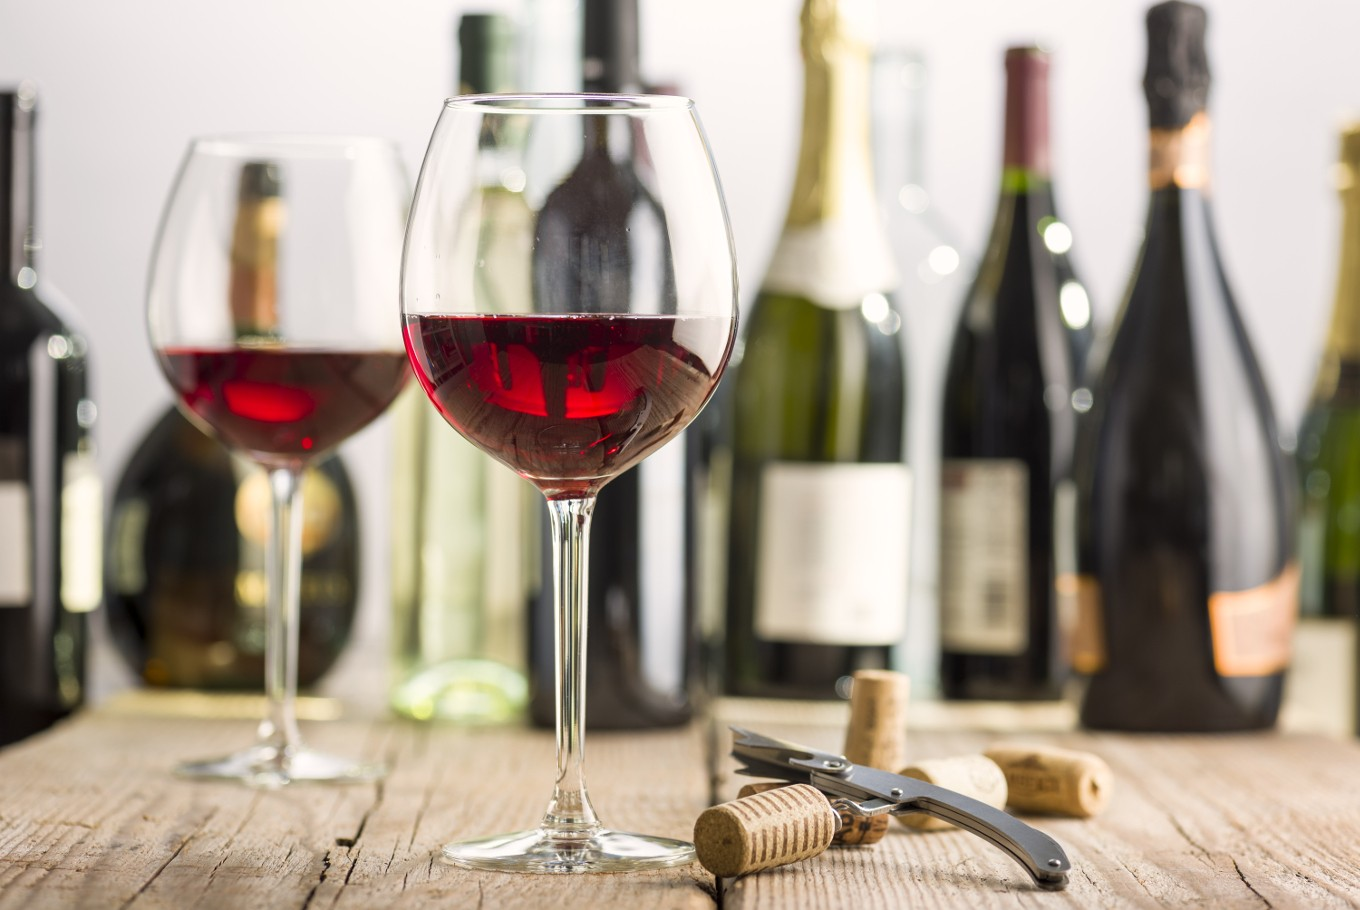 Drinking red wine could be good for your gut health: New study